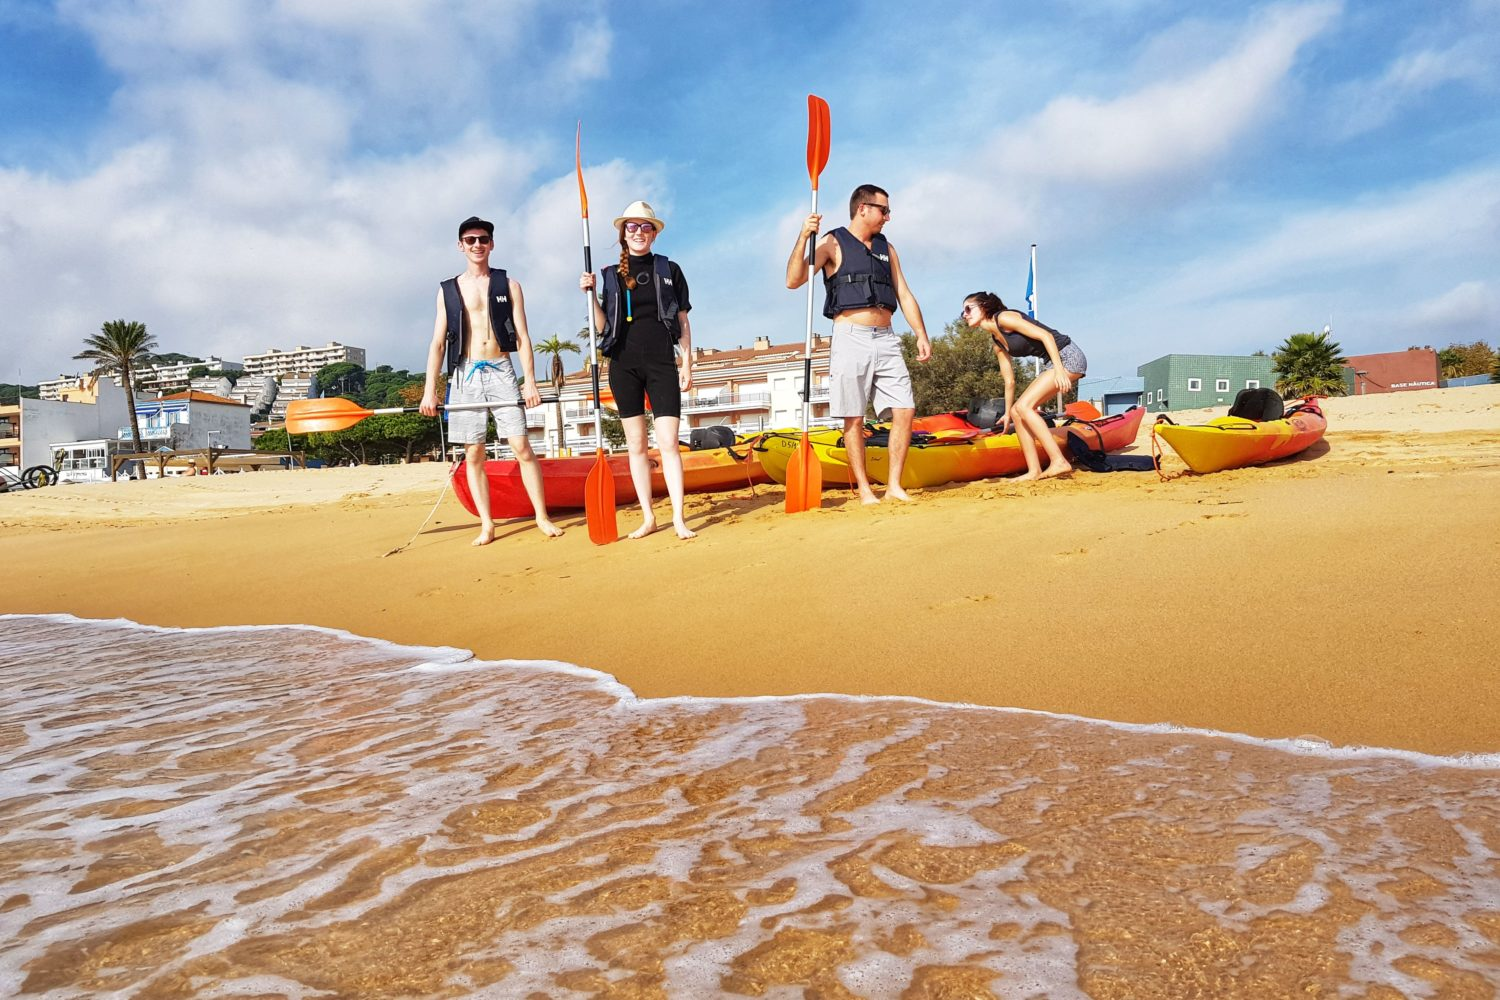 The coastal excursions with the sea kayaks are among the most exciting outdoor activities in Barcelona.